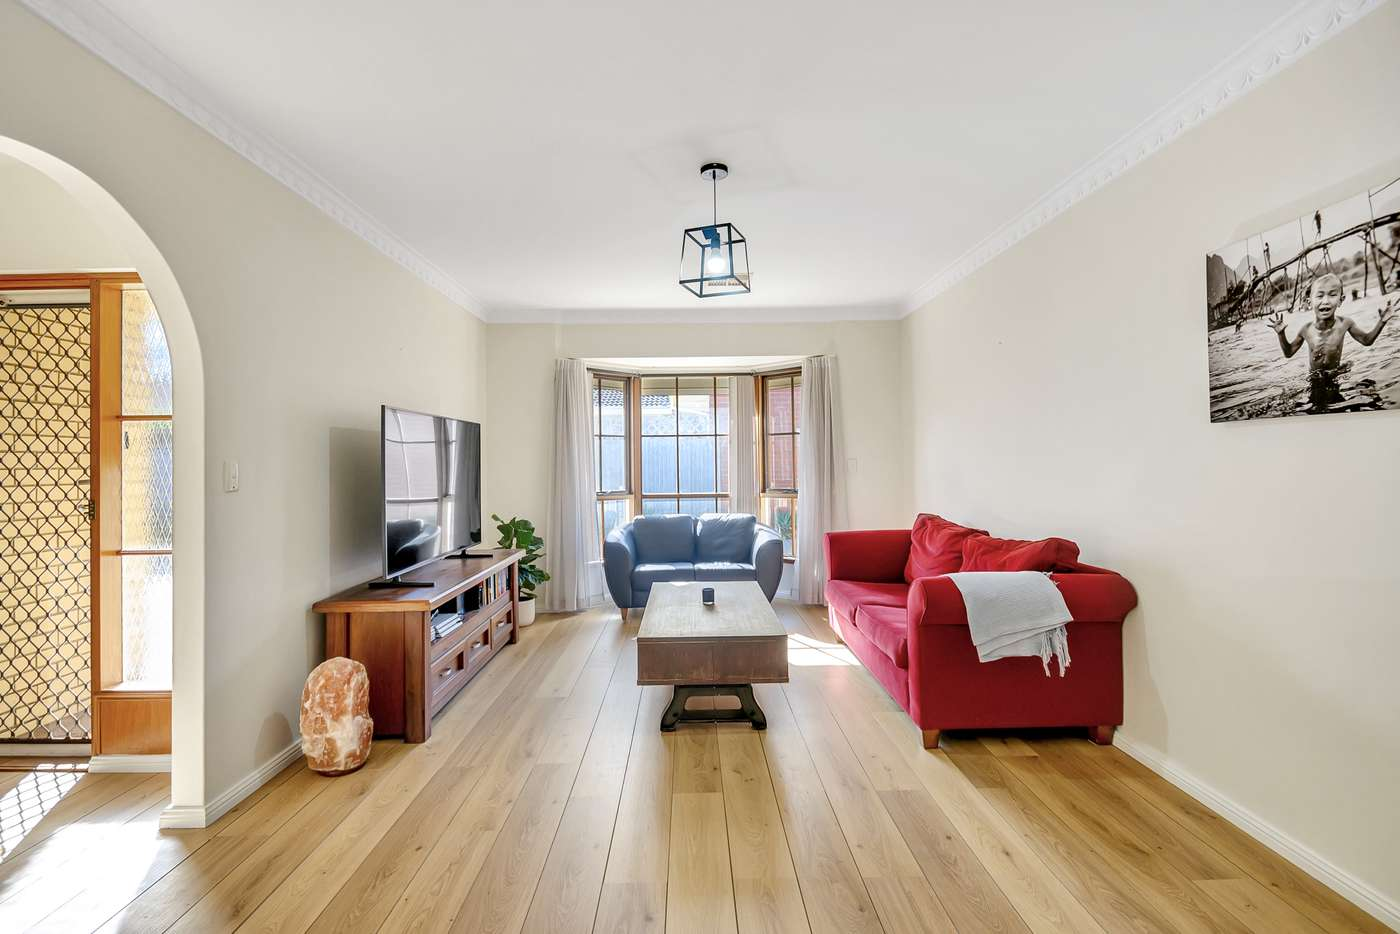 Fifth view of Homely unit listing, 1/14 Strathmore Terrace, Brighton SA 5048